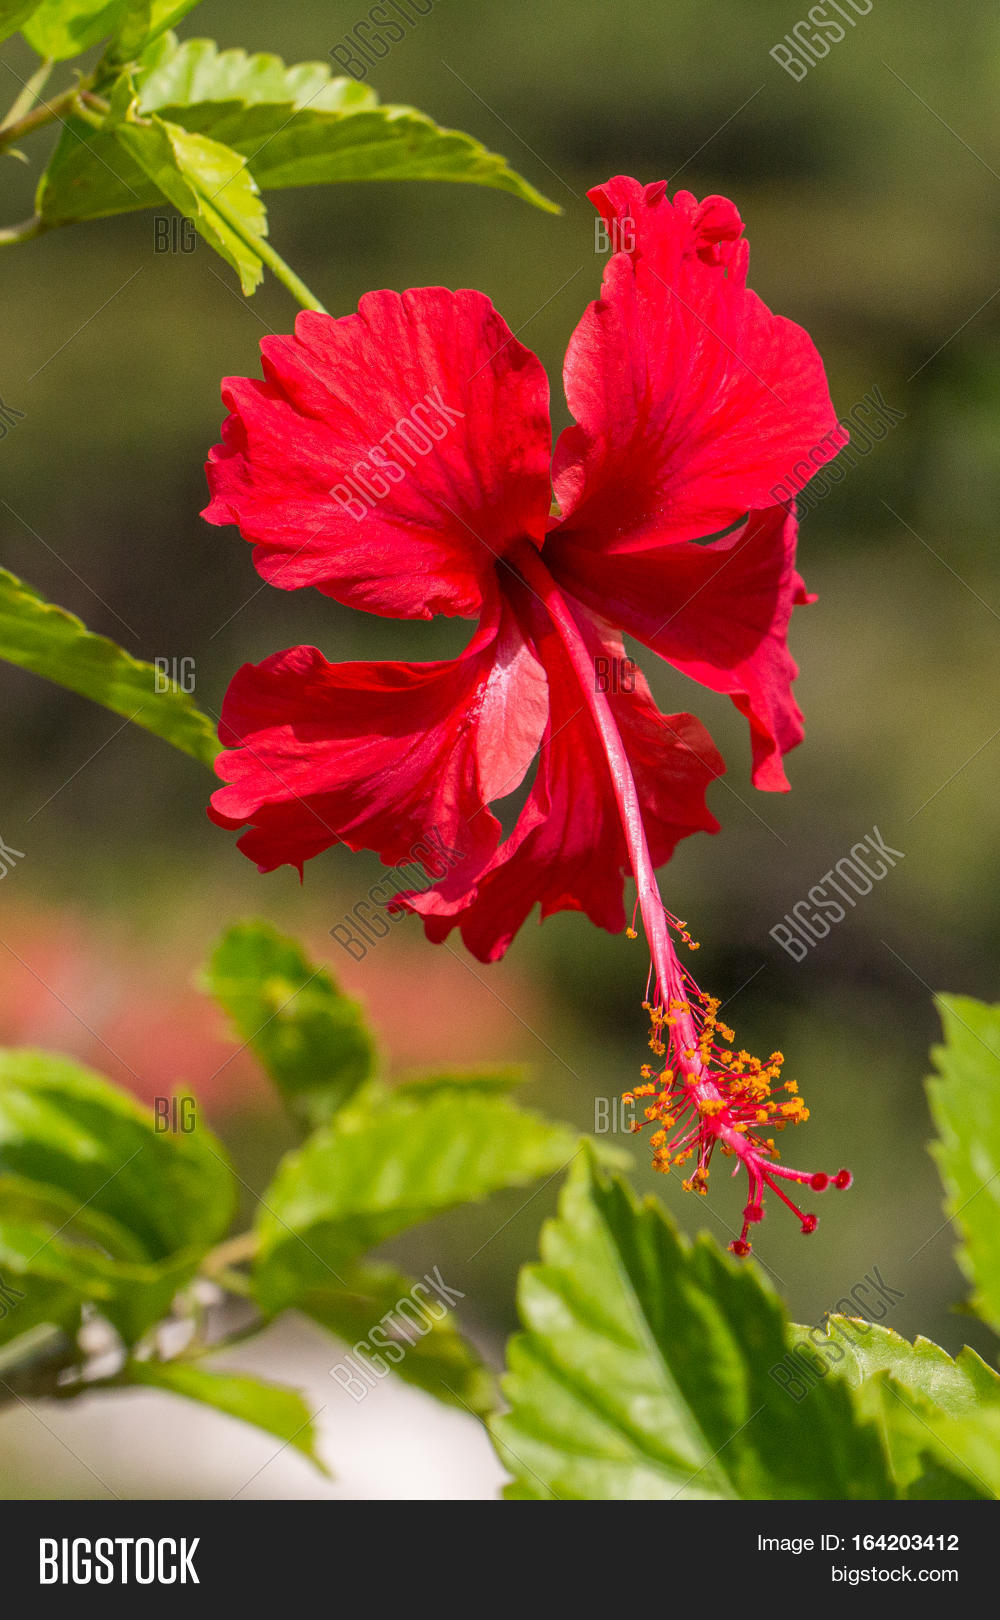 Red Hibiscus Flower Image Photo Free Trial Bigstock